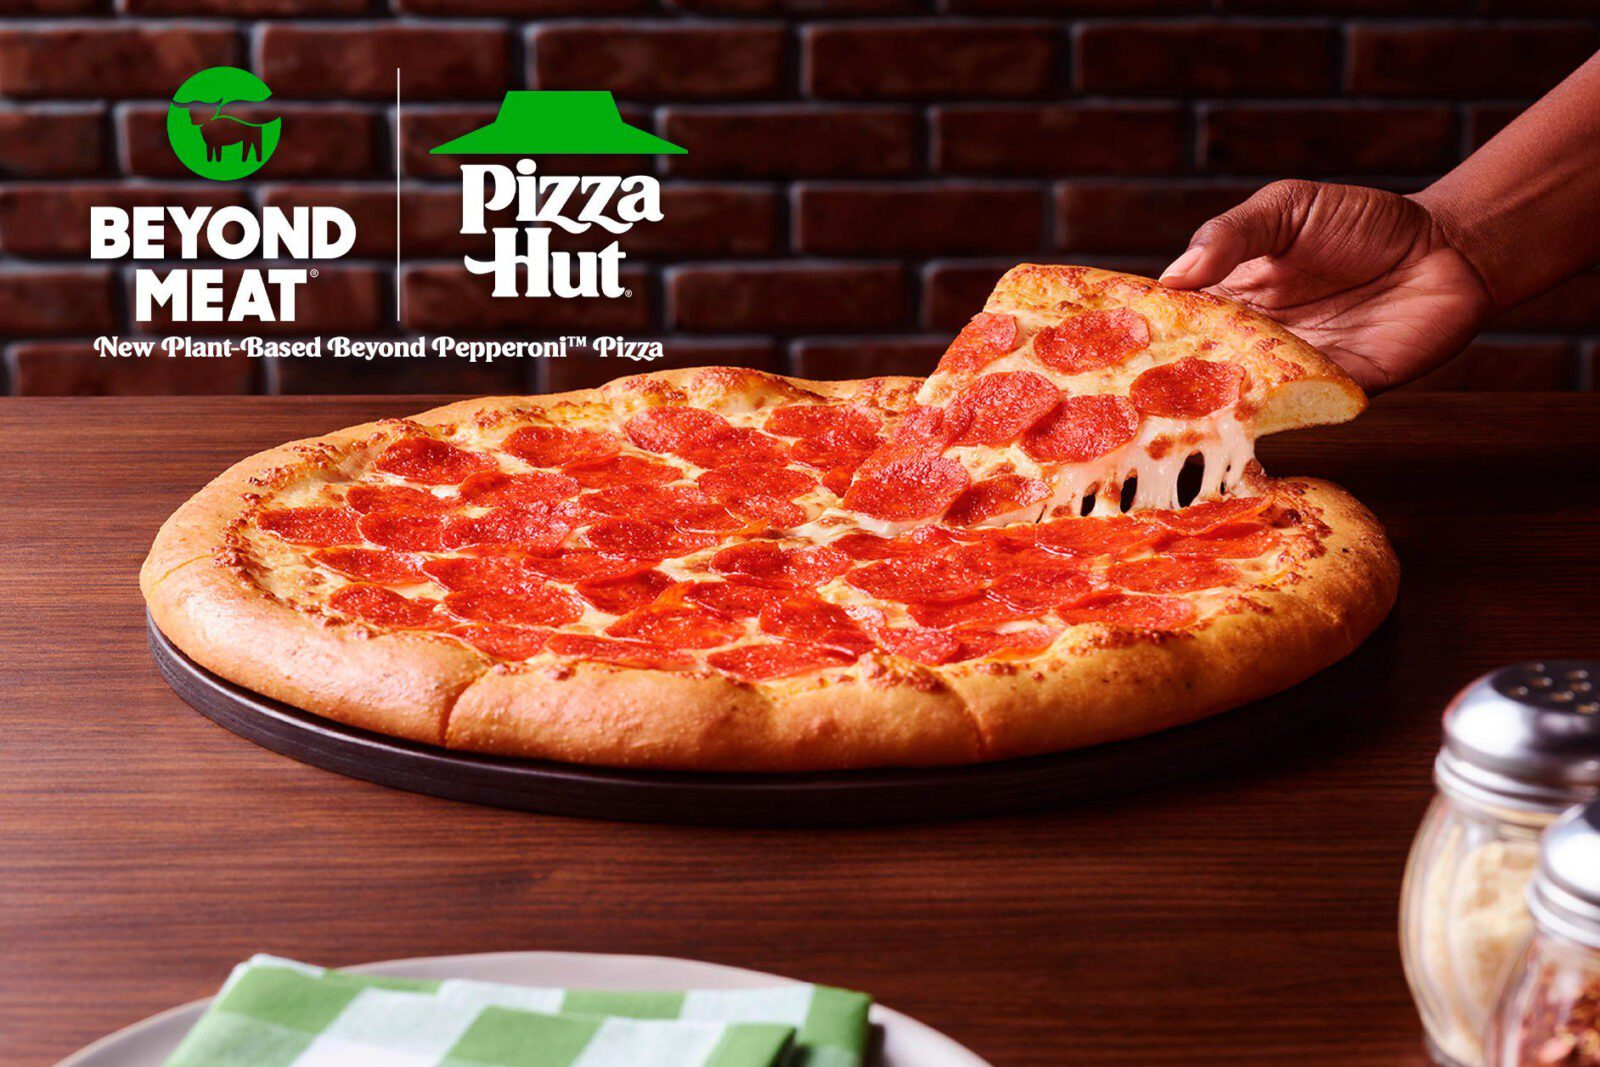 Pizza Hut & Beyond Meat – Test Pepperoni Pizza